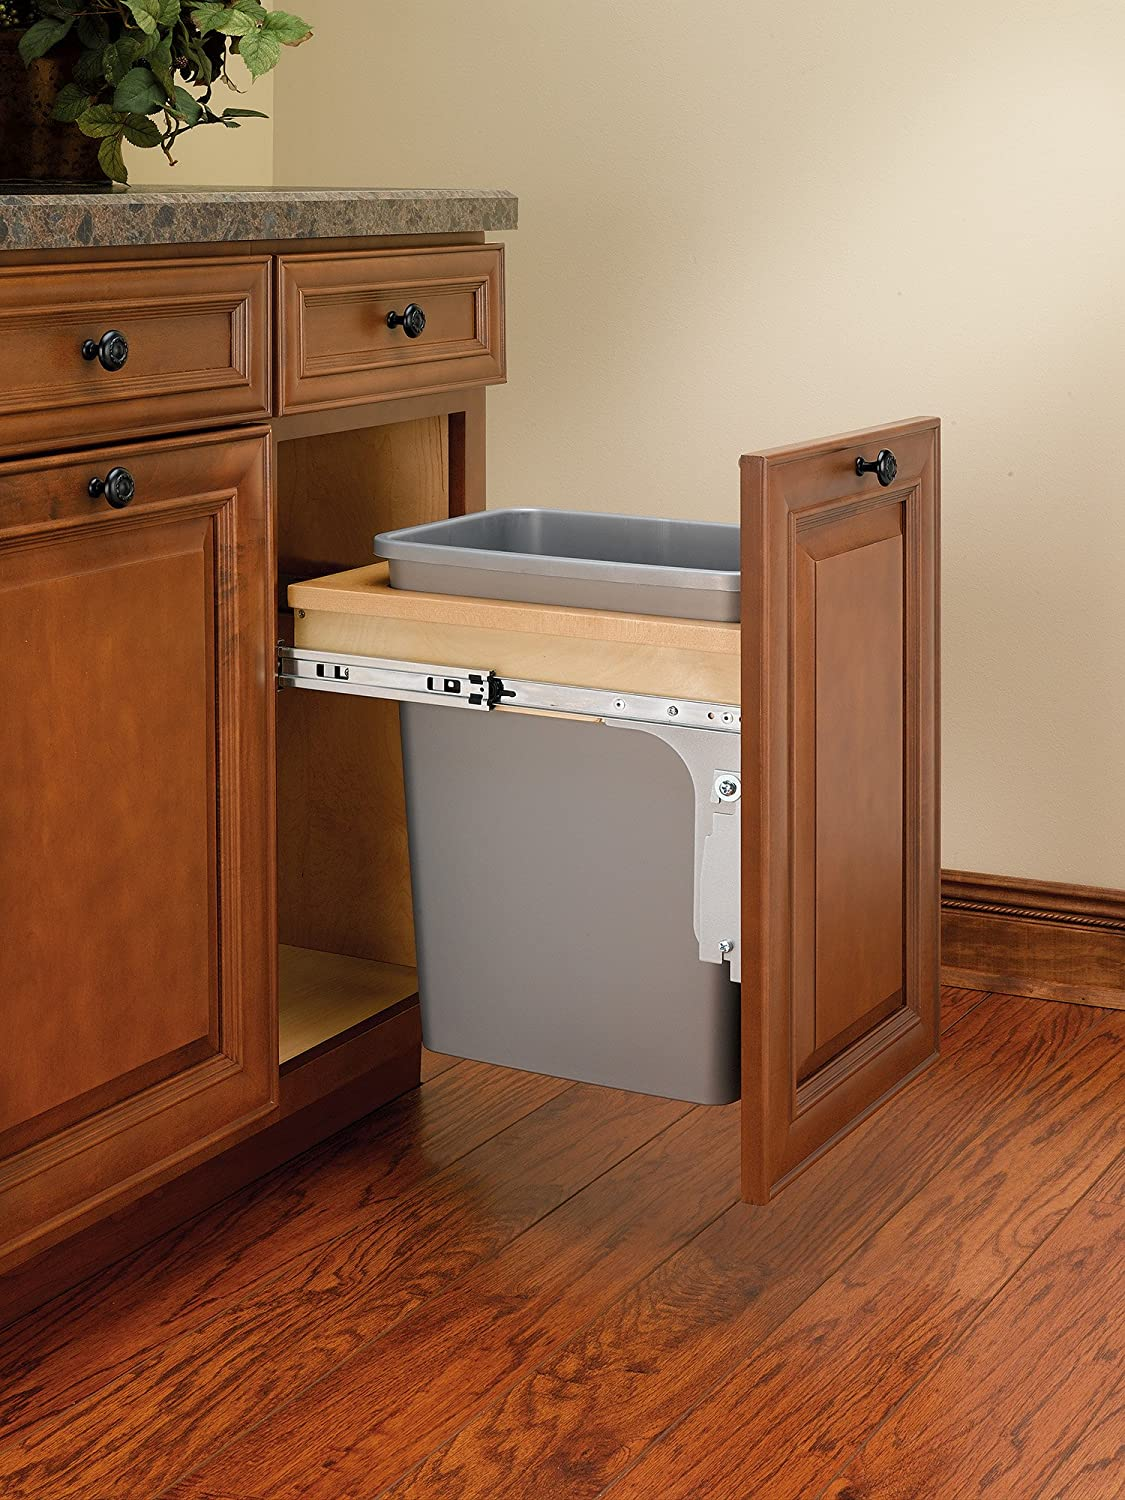 amazoncom revashelf single 35 qt pullout top mount wood and silver waste container for 12 in w x 18 in d 112 in